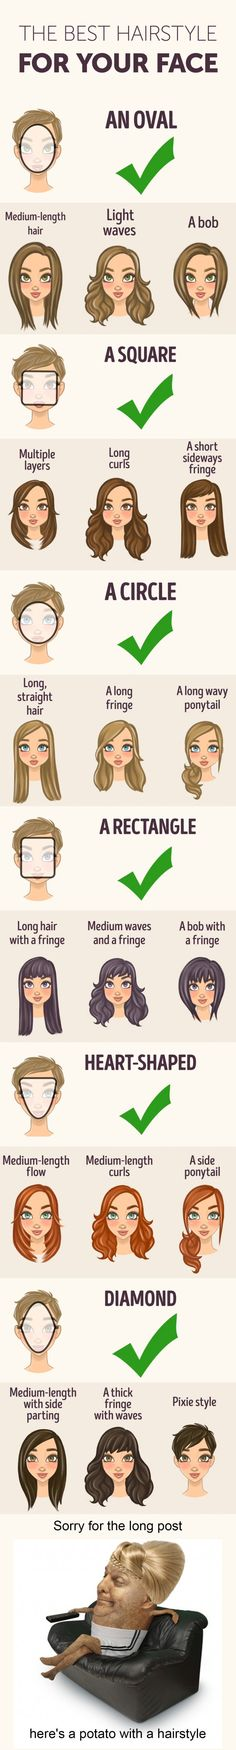 The best hairstyle for your face shape. - 9GAG